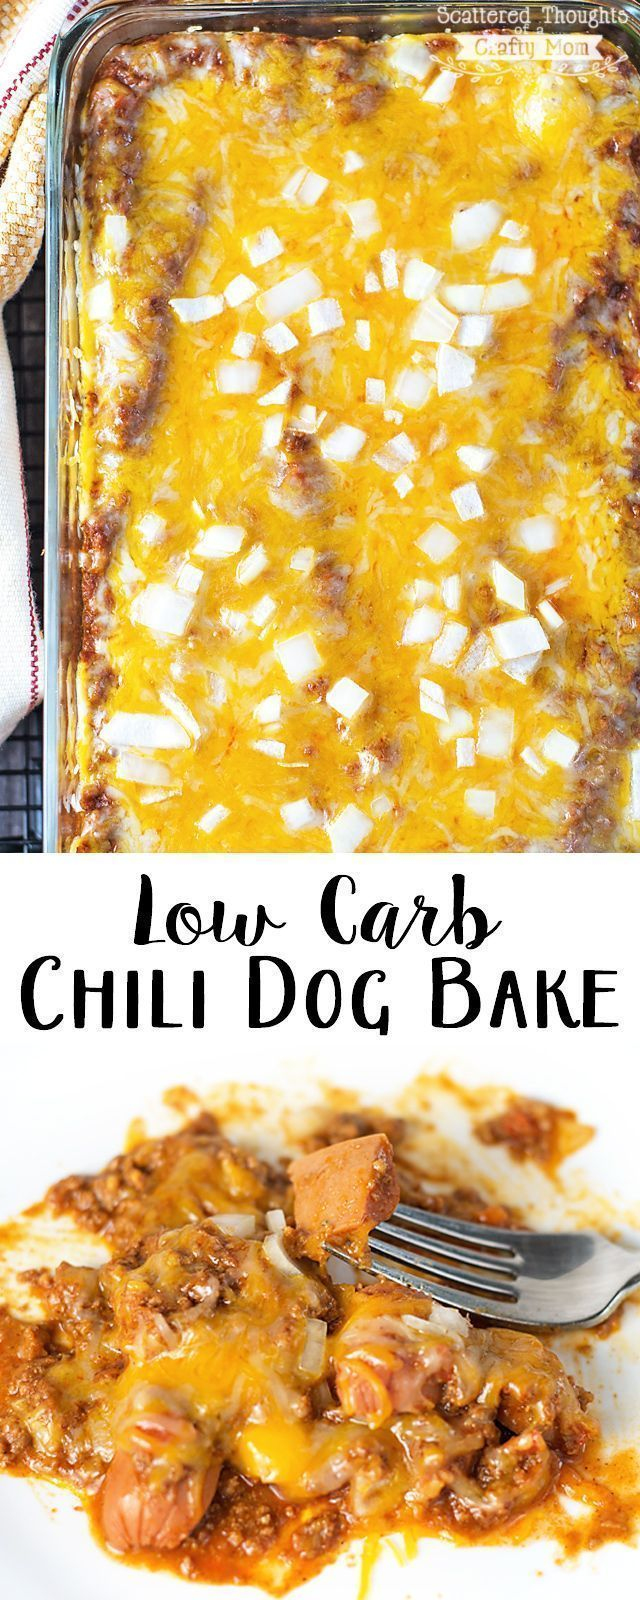 Eating Low Carb or Gluten Free? You can still enjoy a Chili Dog with this Low Carb Chili Dog Bake Recipe! (Low Carb Breakfast)